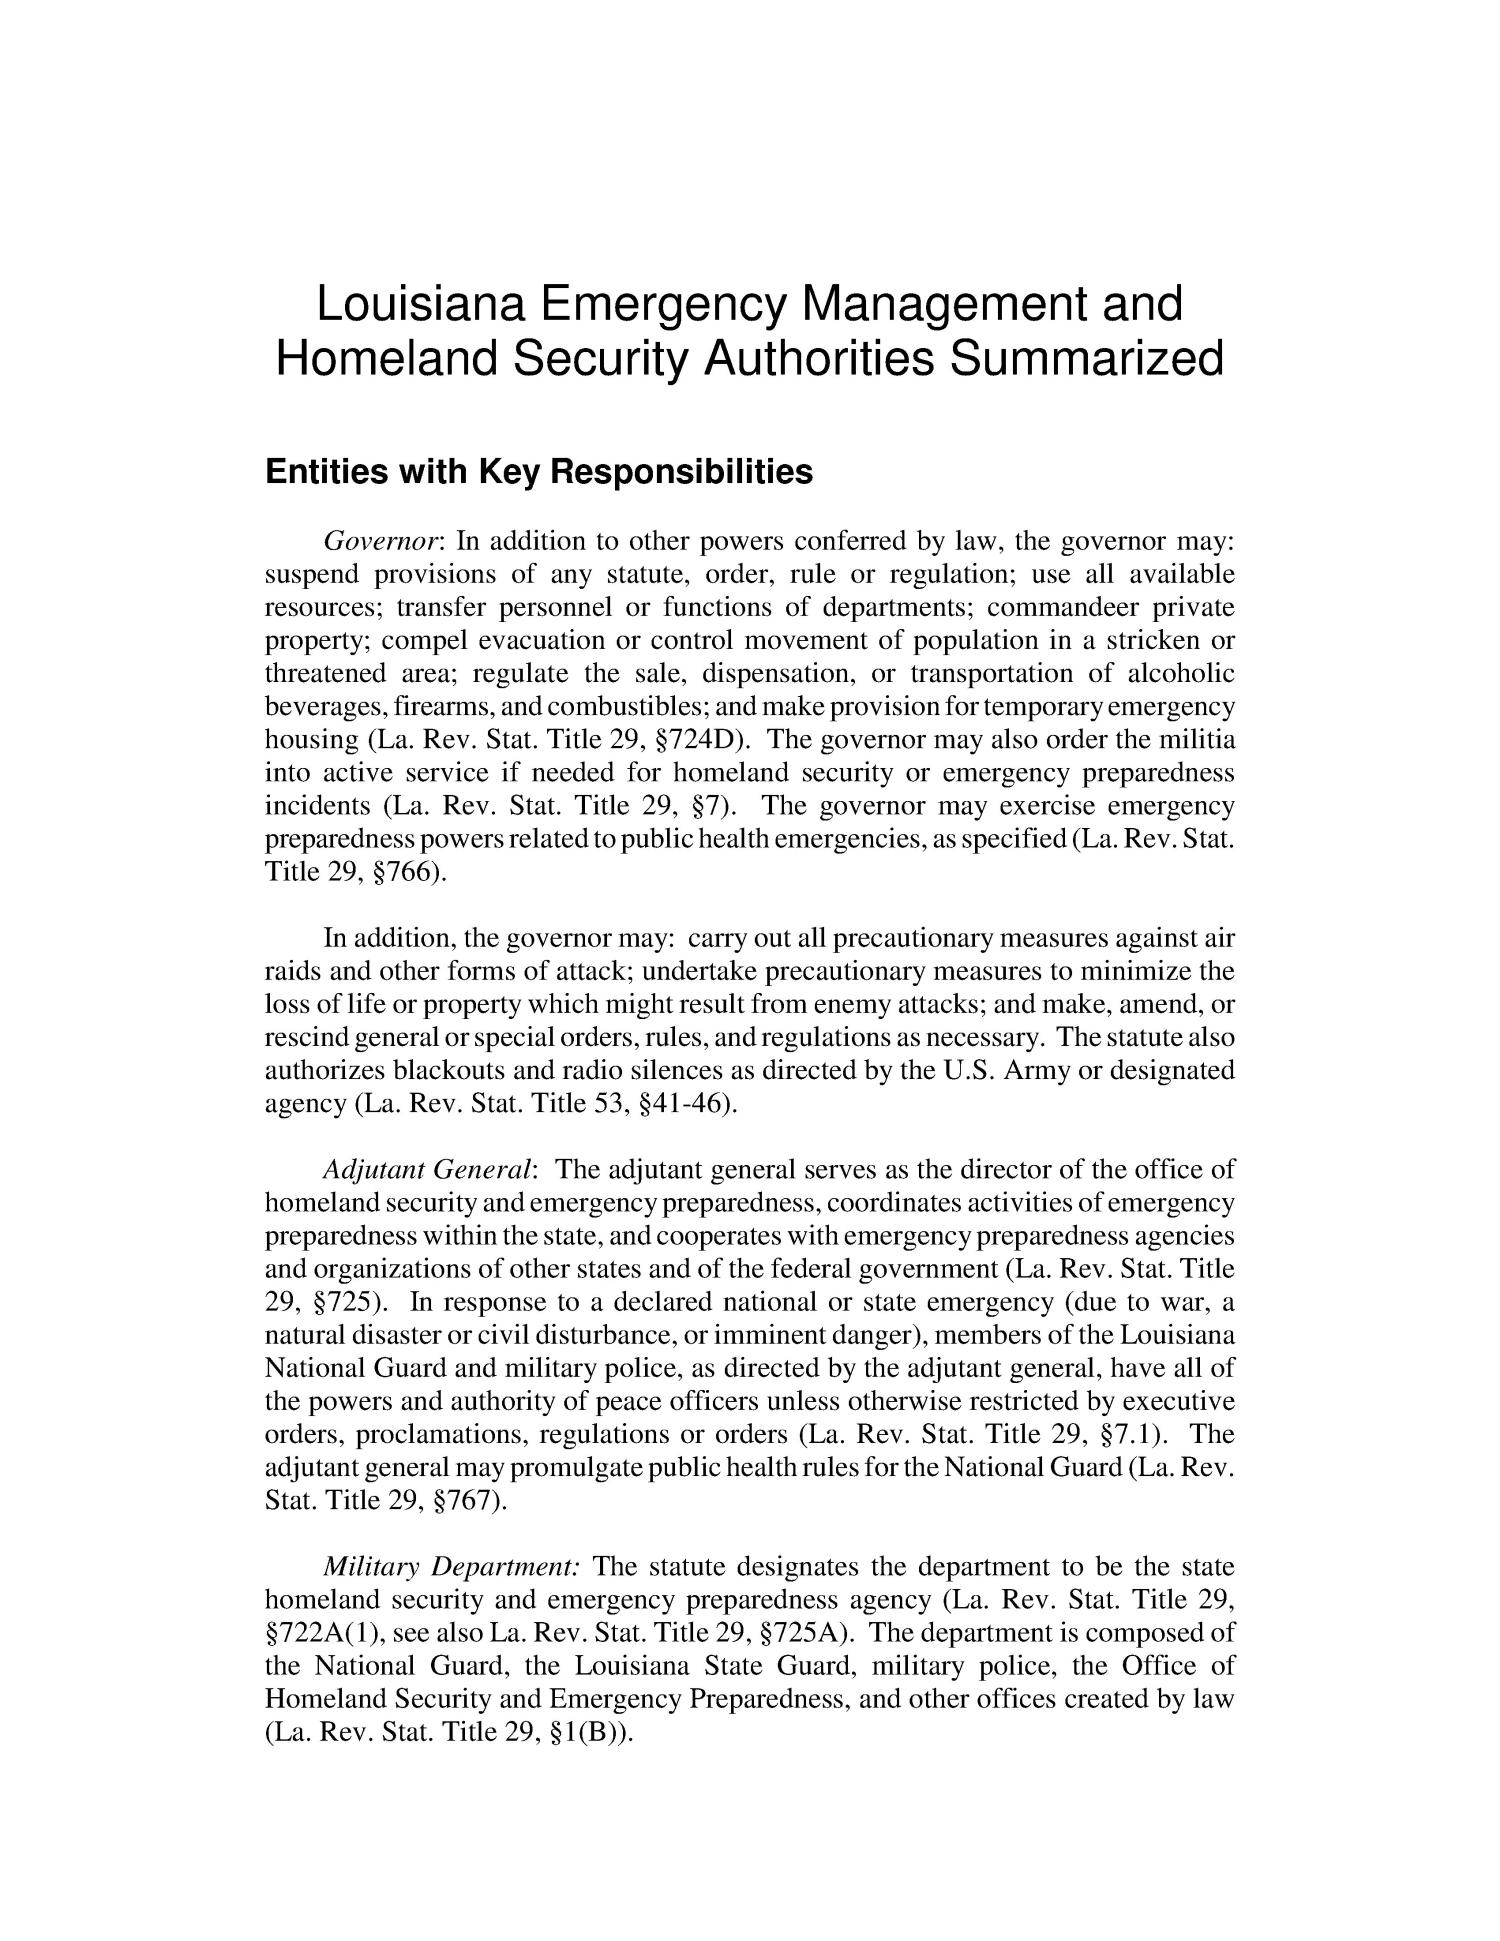 Louisiana Emergency Management and Homeland Security Authorities Summarized                                                                                                      [Sequence #]: 4 of 12